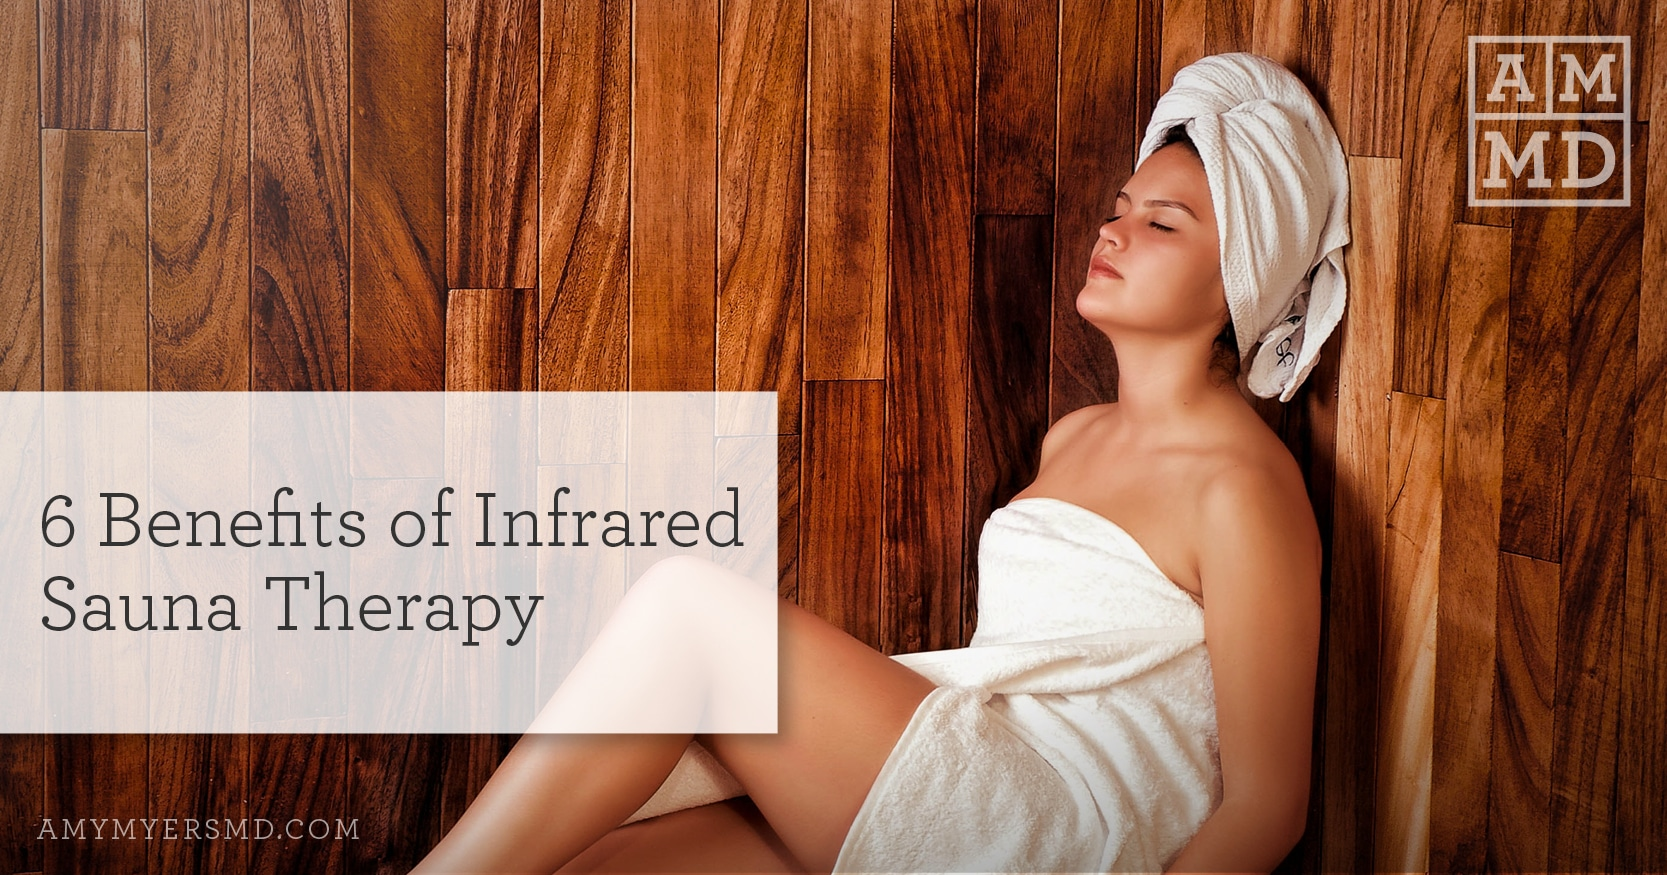 Benefits of Infrared Sauna Therapy - Woman in Sauna - Featured Image - Amy Myers MD